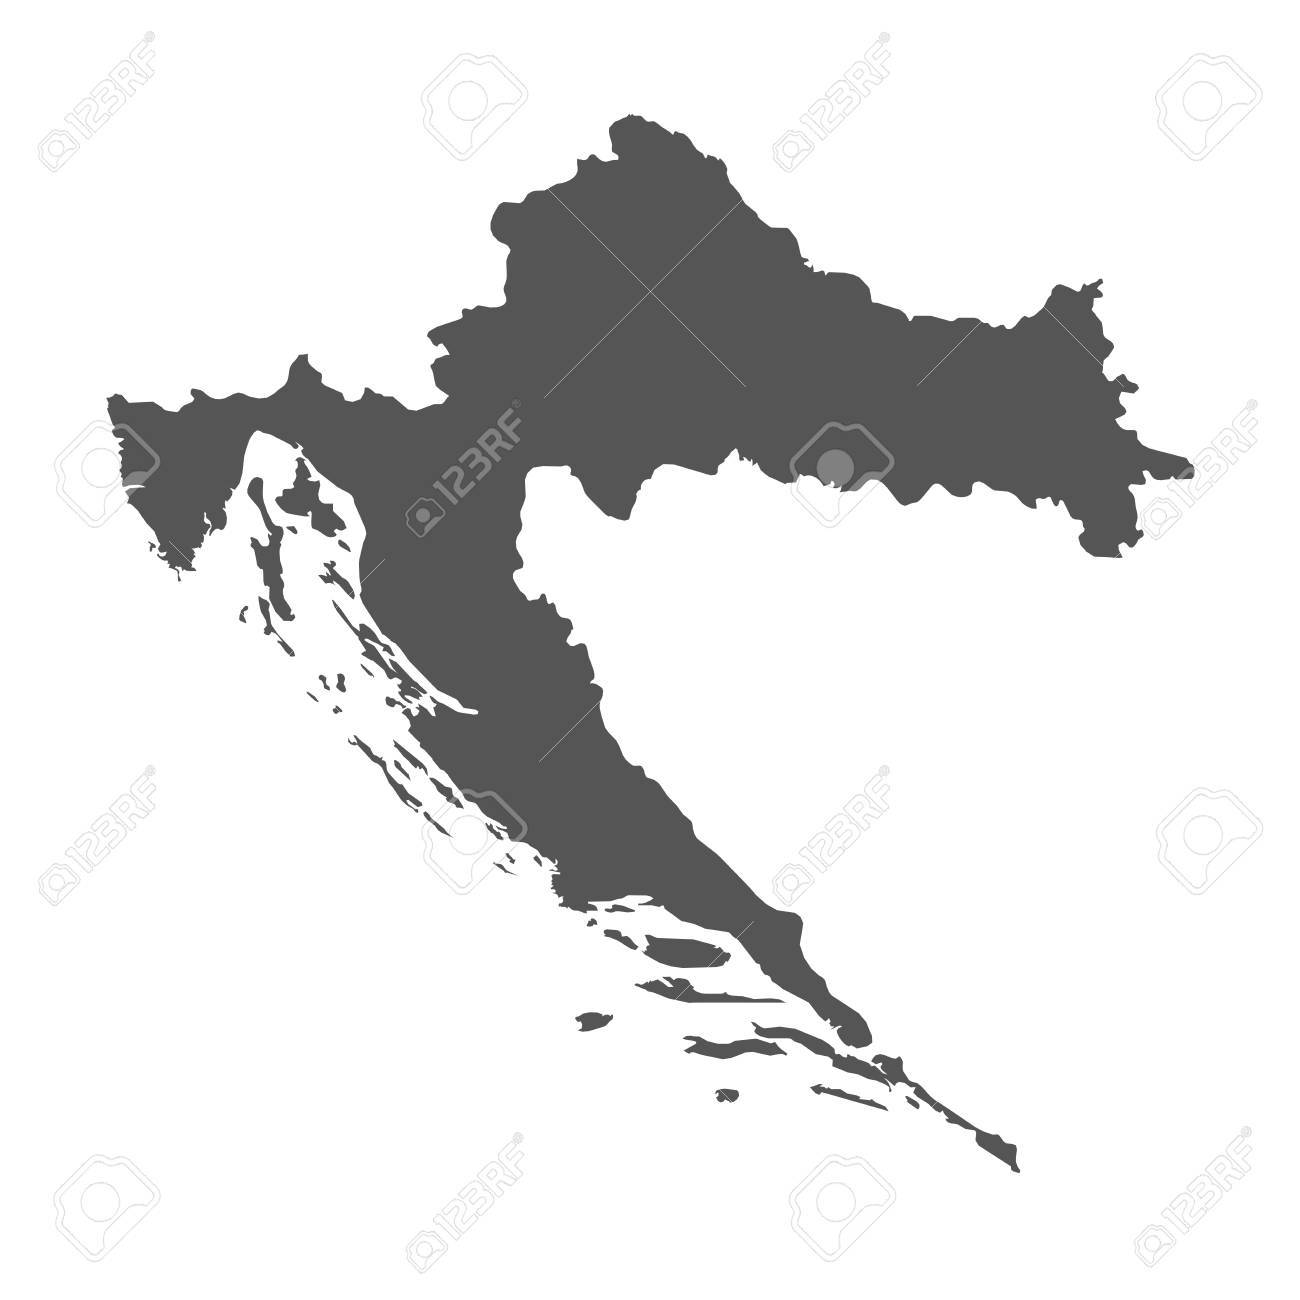 Croatia vector map black icon on white background royalty free croatia vector map black icon on white background stock vector 77698420 gumiabroncs Image collections